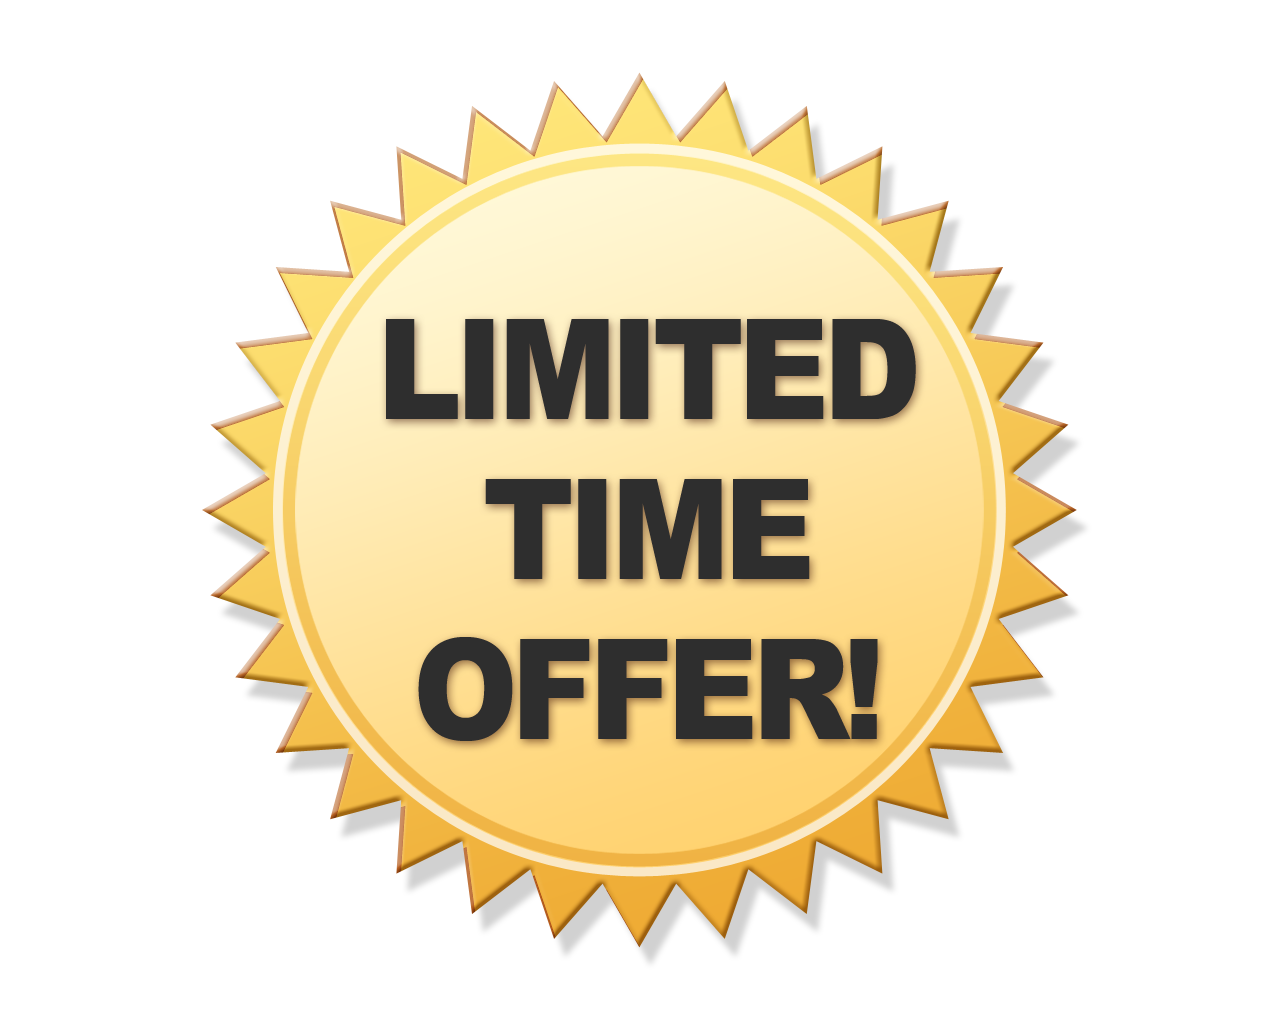 Limited offer png transparent. Name clipart offering